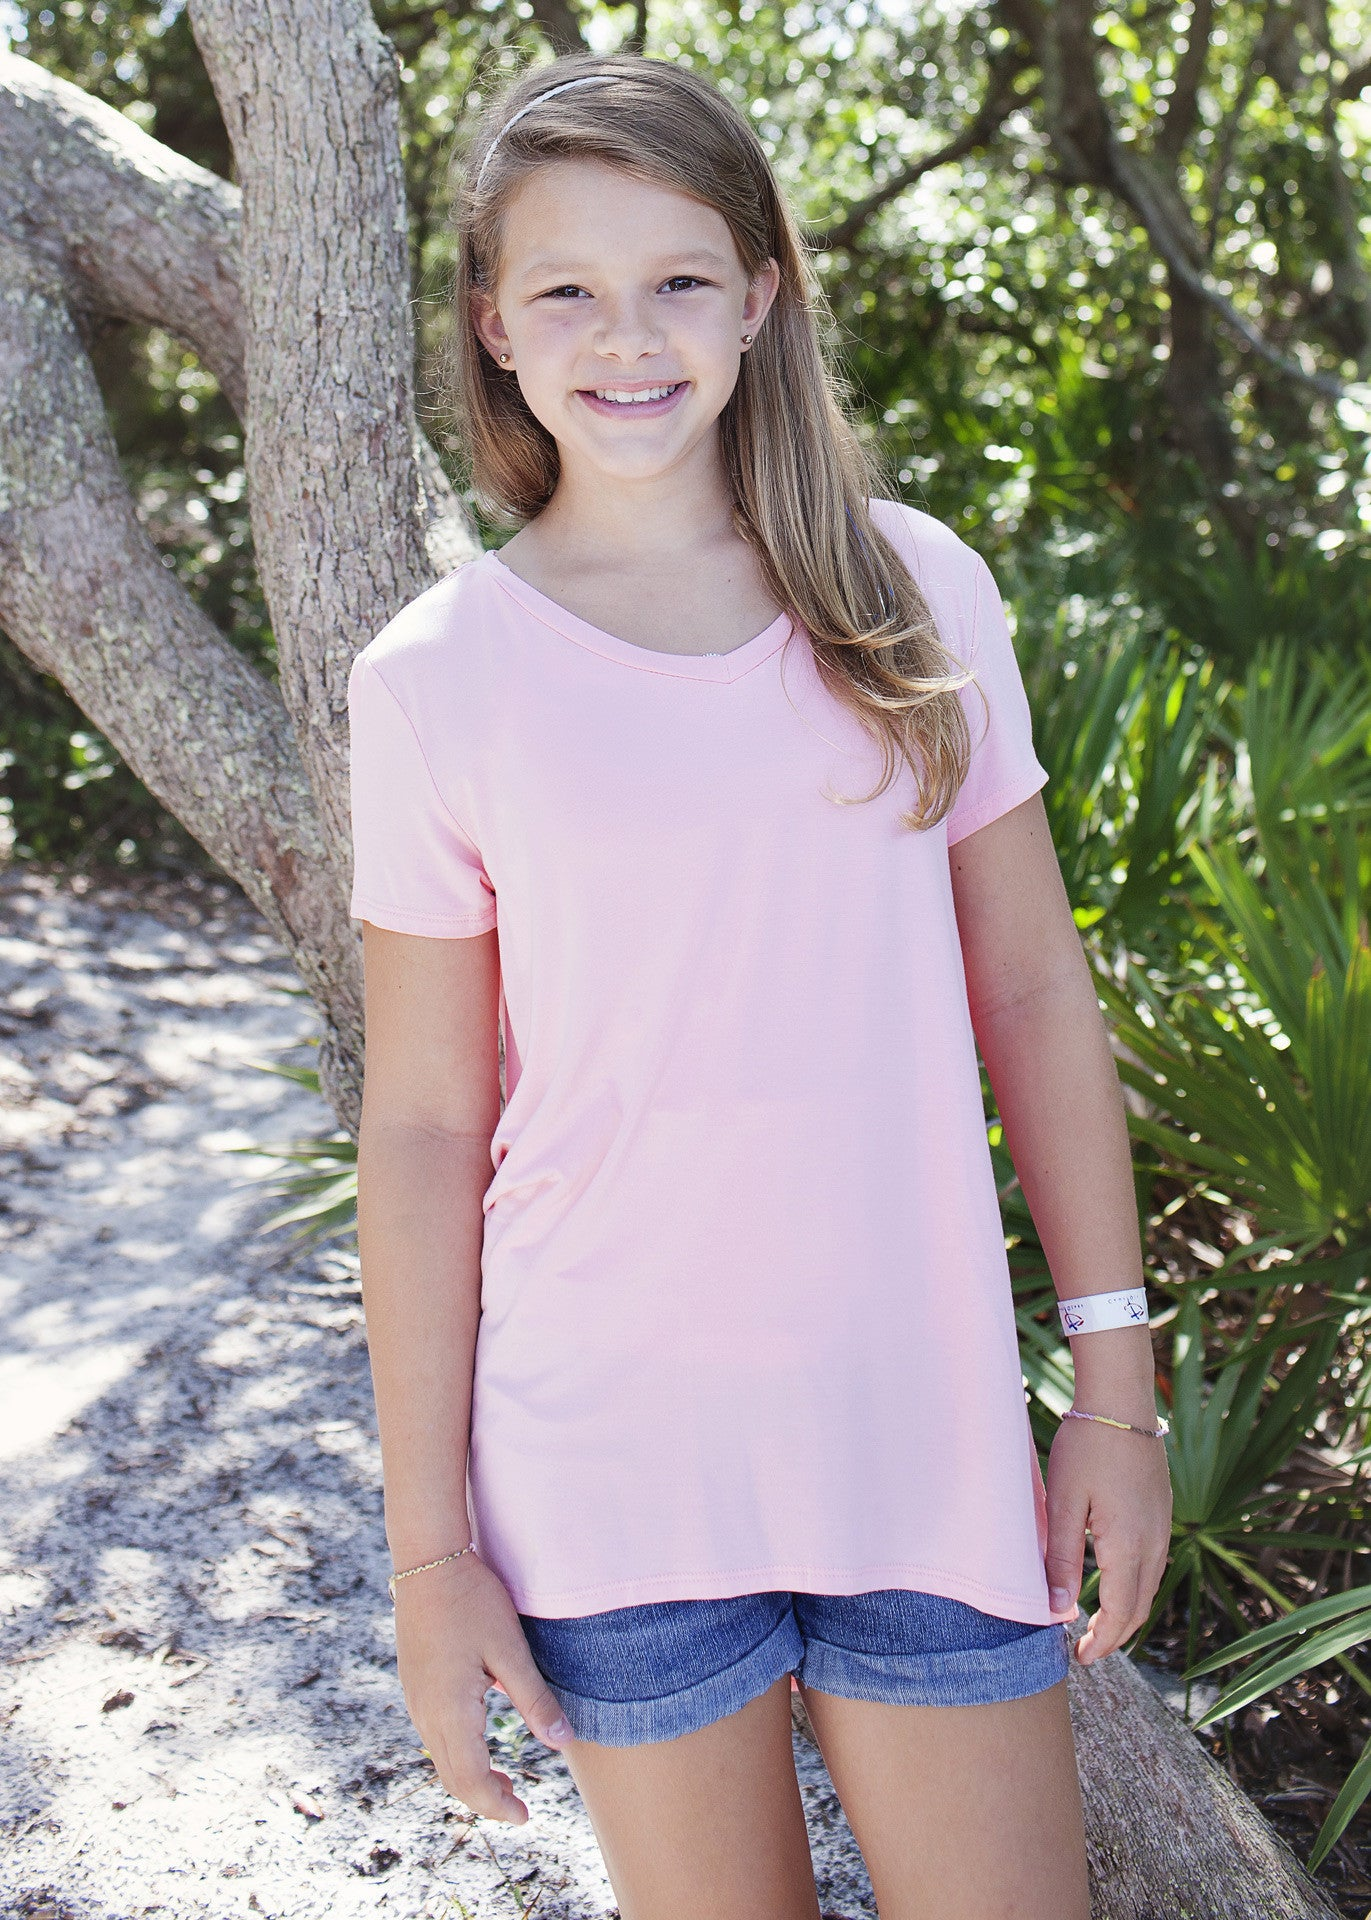 Kids High Low Top - Piko Clearance Center - 7